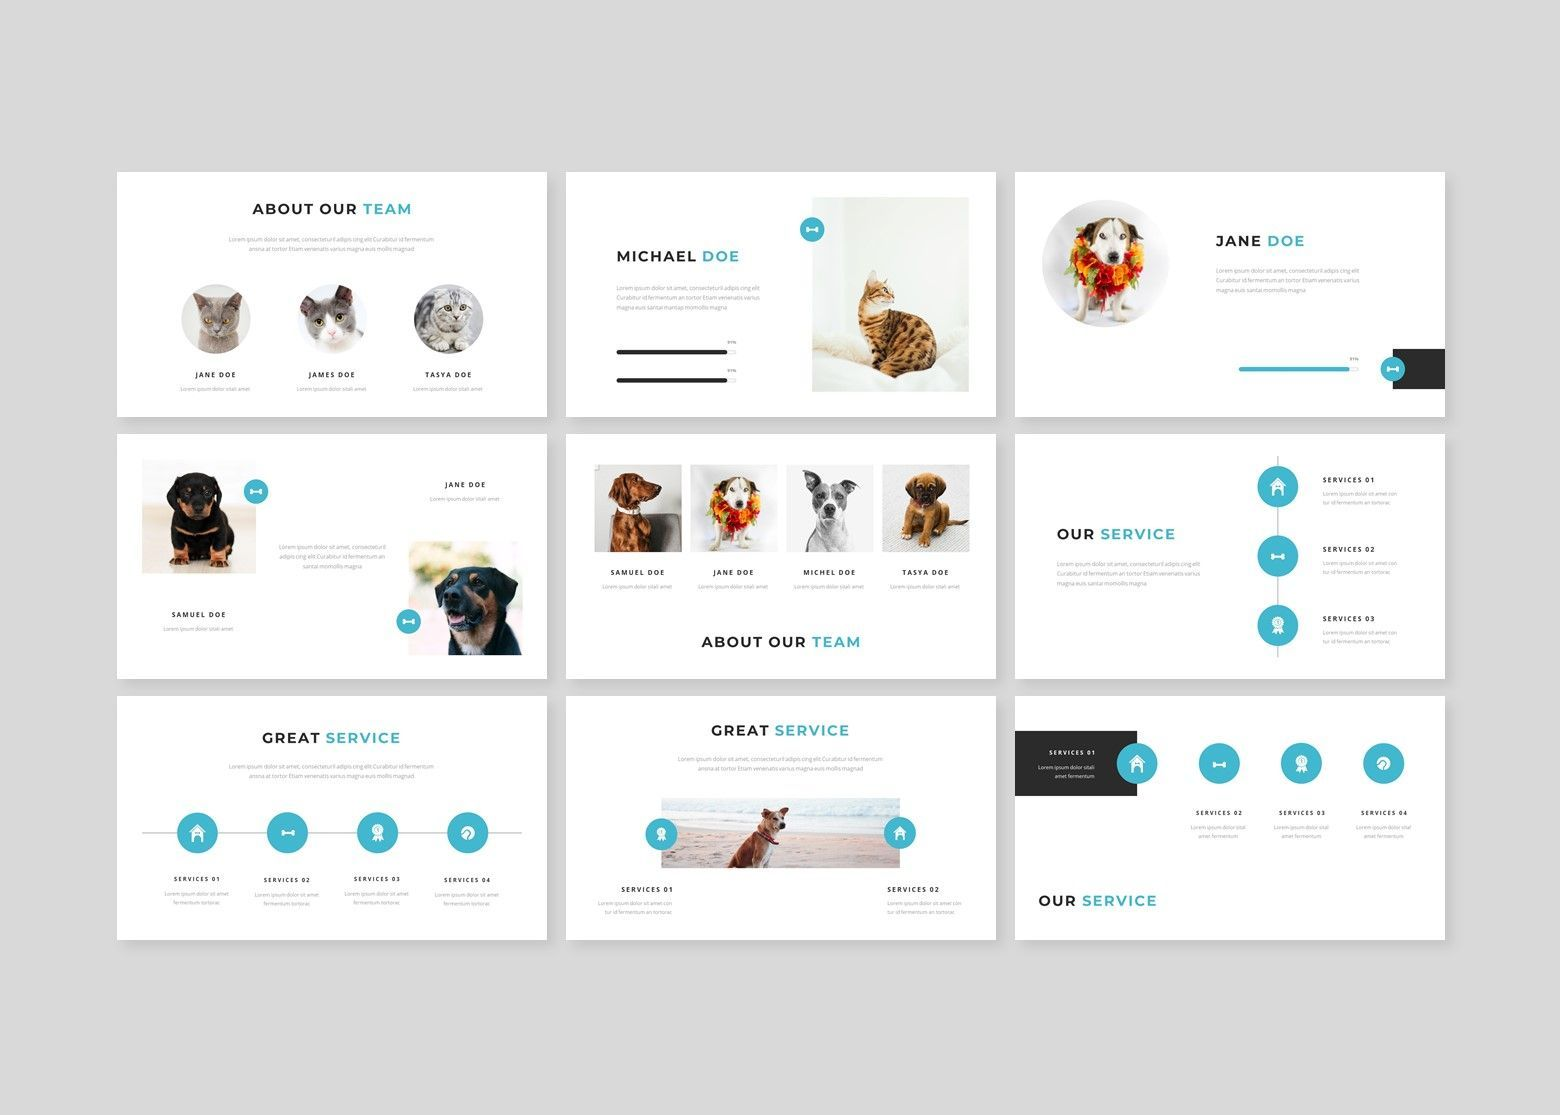 Wrog A Pet Service Google Slides, Slide 3, 08110, Business Models — PoweredTemplate.com